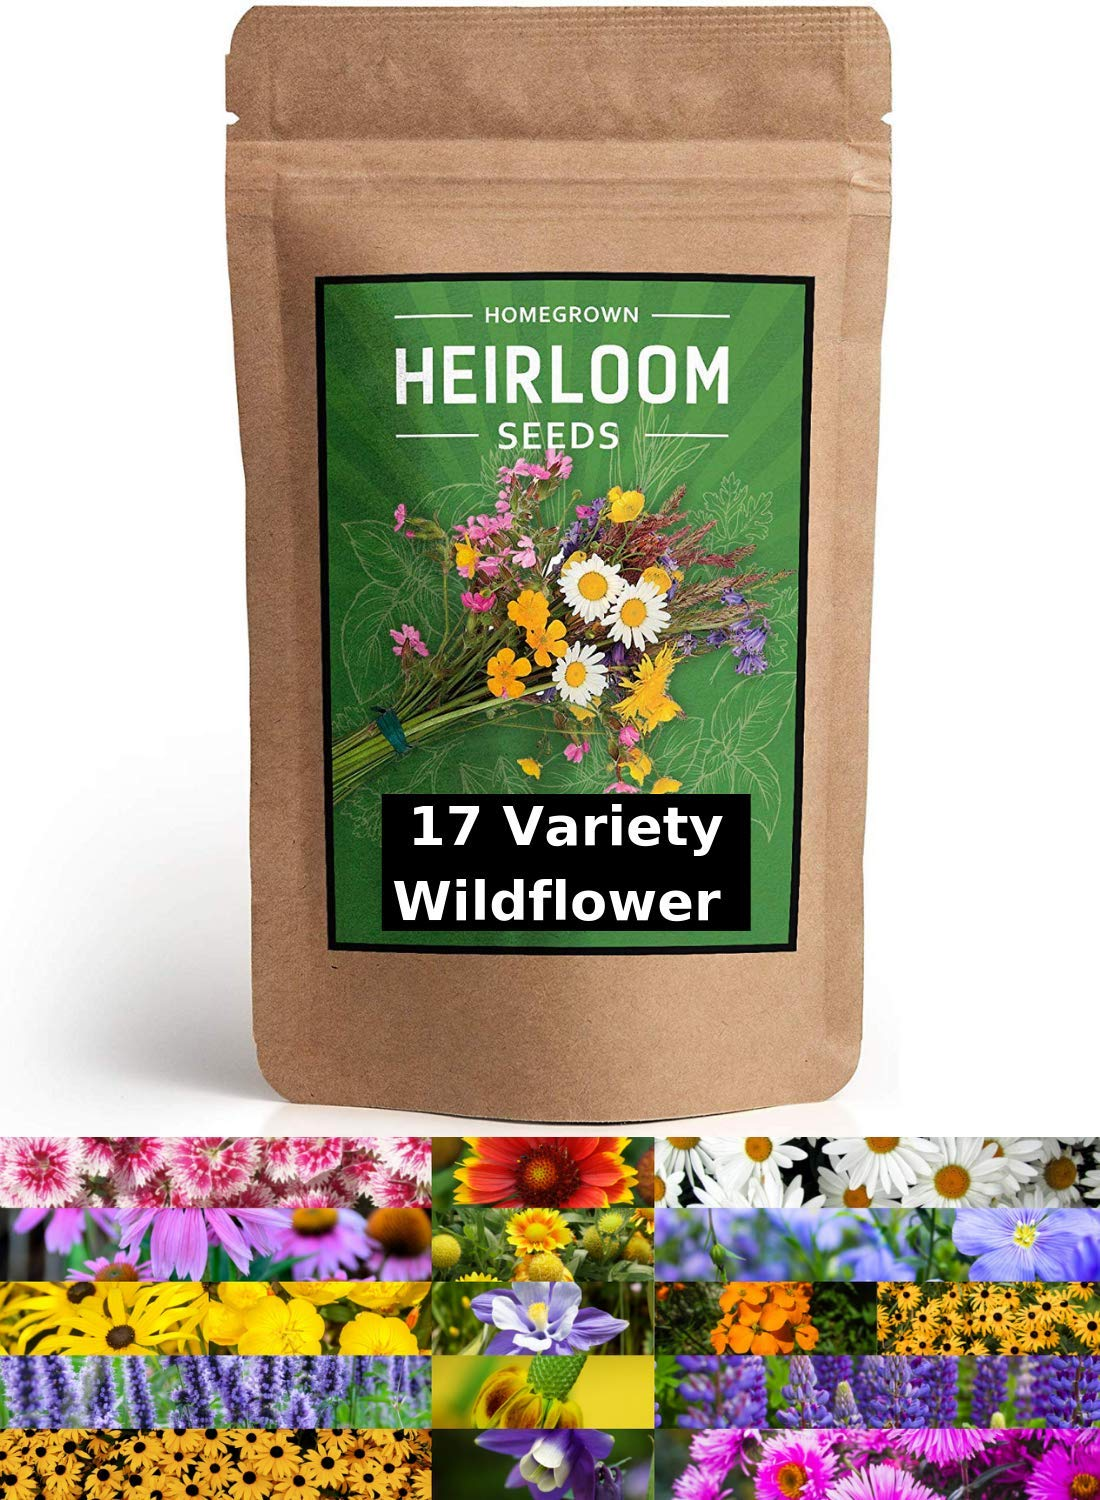 Wildflower Seeds - Flower Seed Pack [17 Variety] - Perennial Flower Seeds for Attracting Birds & Butterflies - Flower Seeds for Planting Outdoor - Non GMO, Open Pollinated - Flower Garden Seeds by homegrown